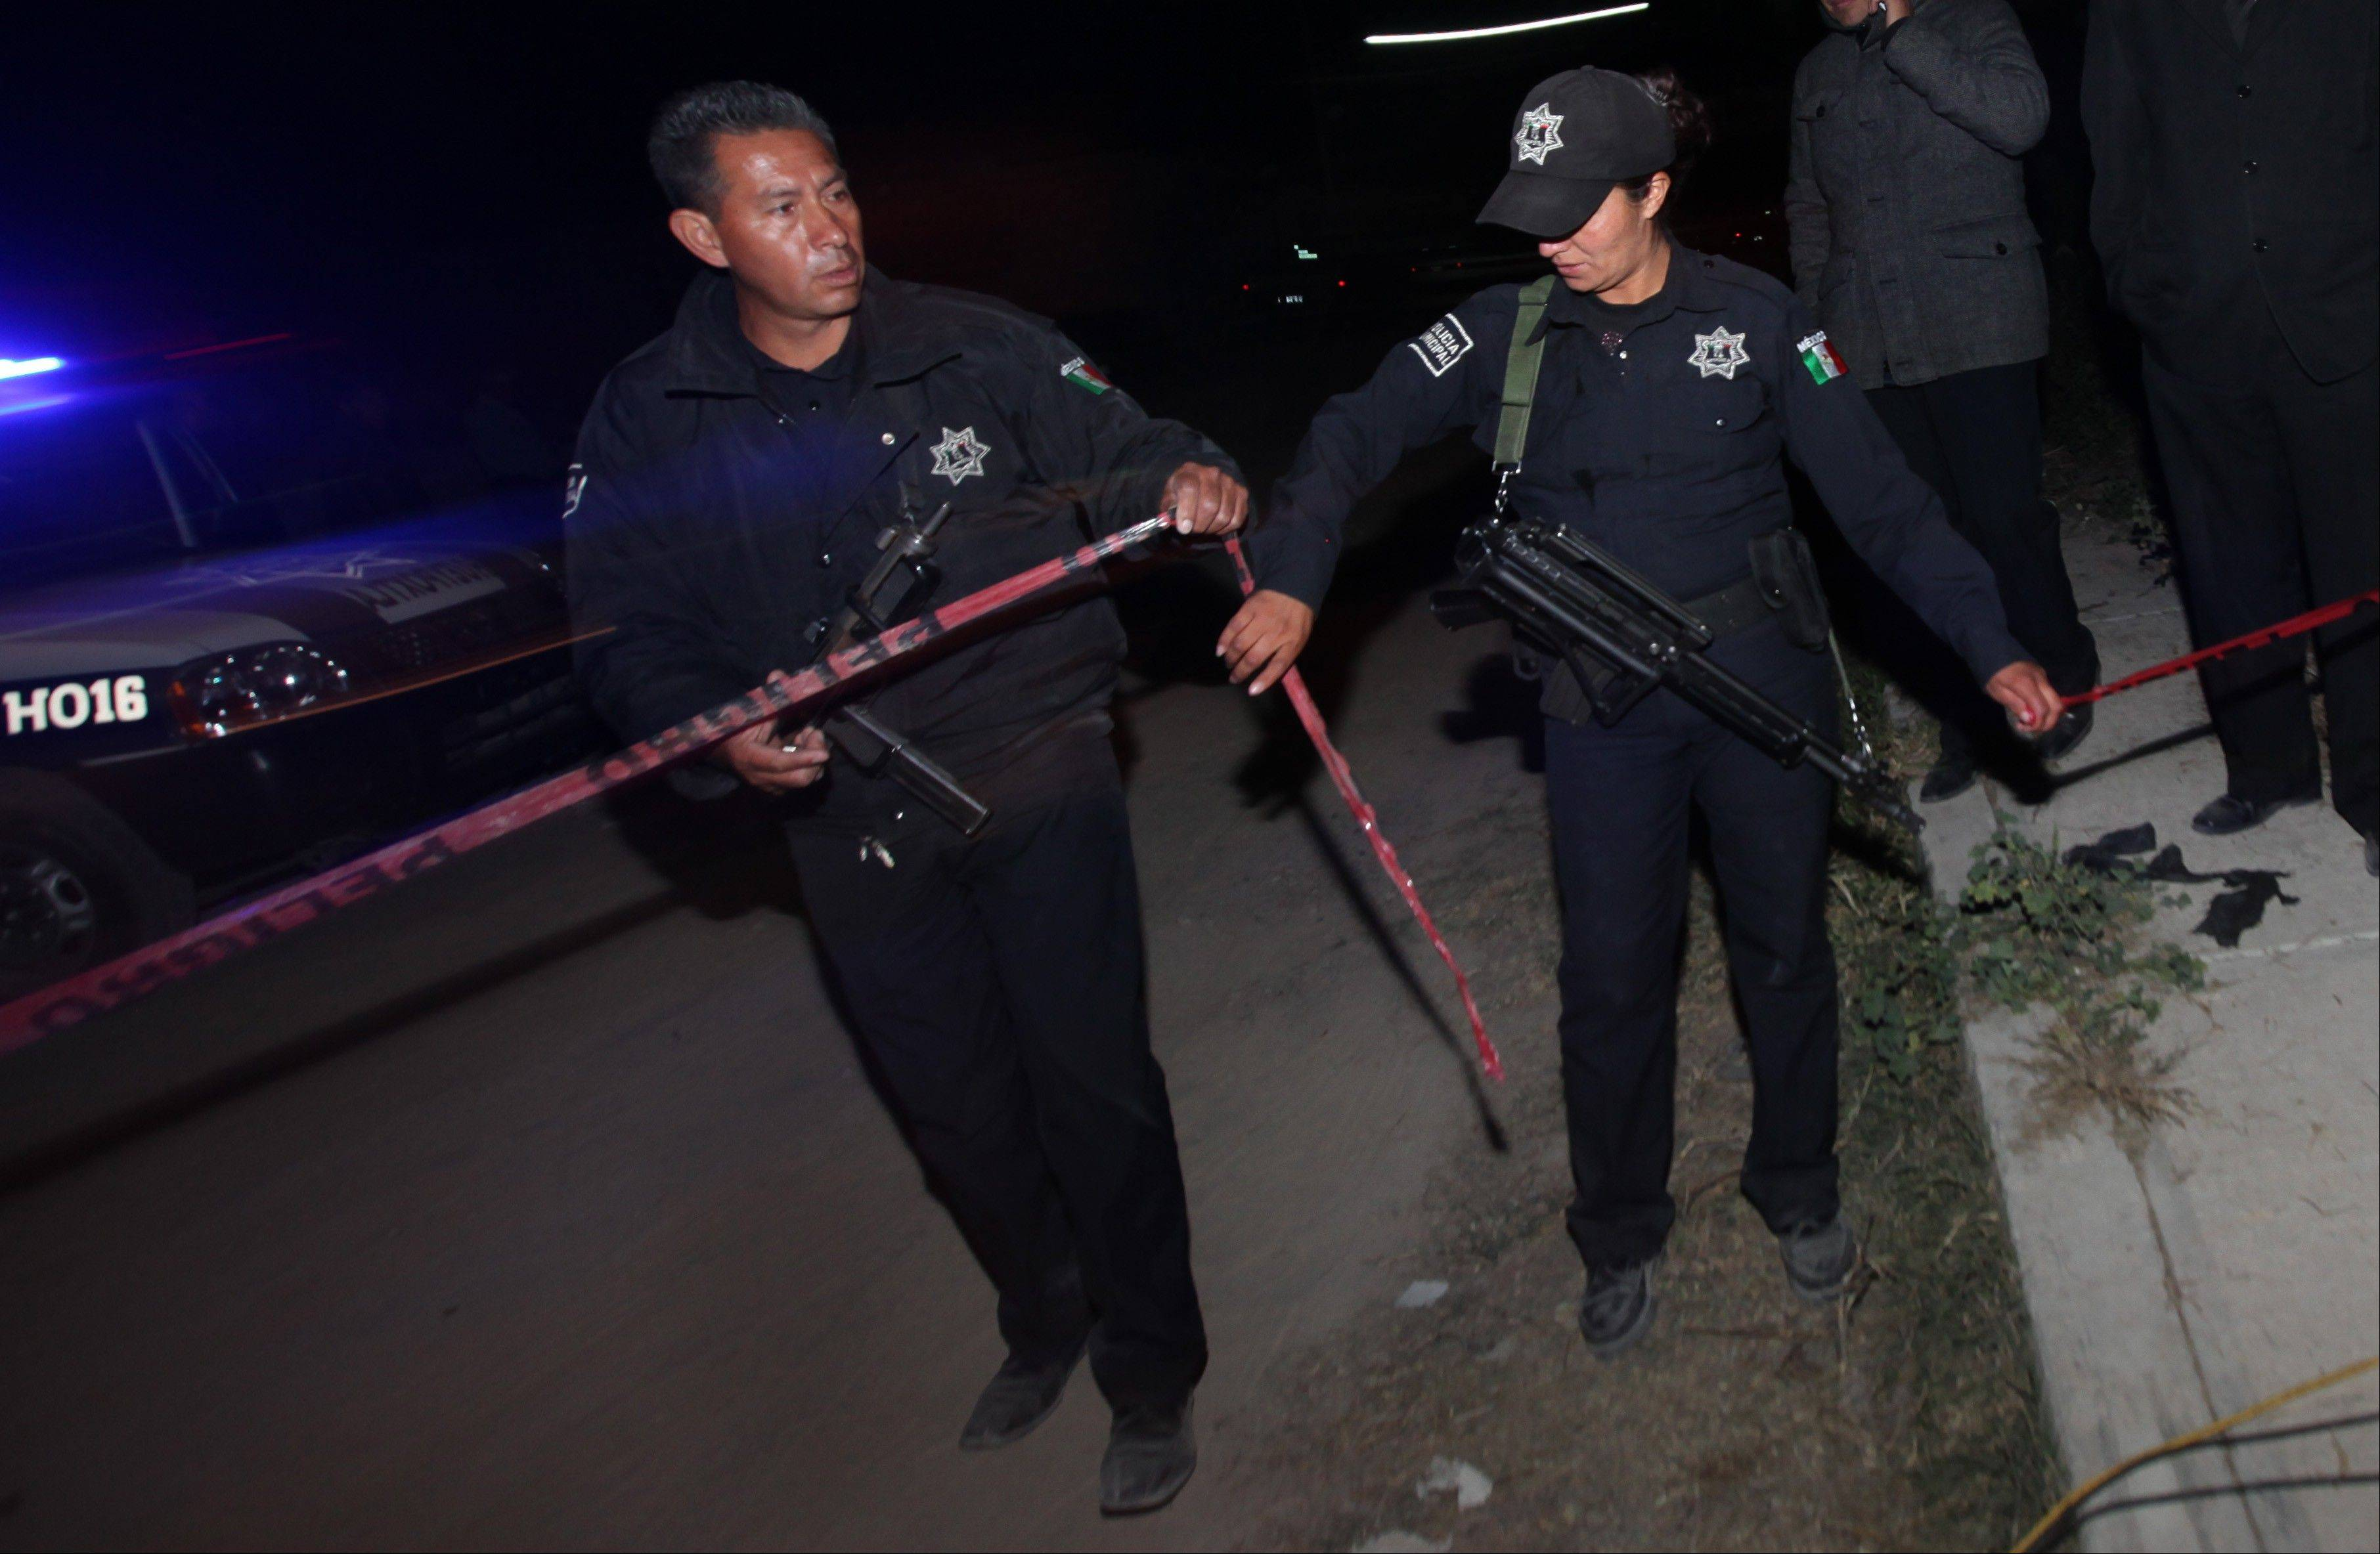 Police agents cordon off an area in the village of Hueypoxtla, Mexico. Mexican troops and federal police kept a nighttime vigil guarding a rural field where thieves abandoned a stolen shipment of highly radioactive cobalt-60, while officials began planning the delicate task of safely recovering the dangerous material.